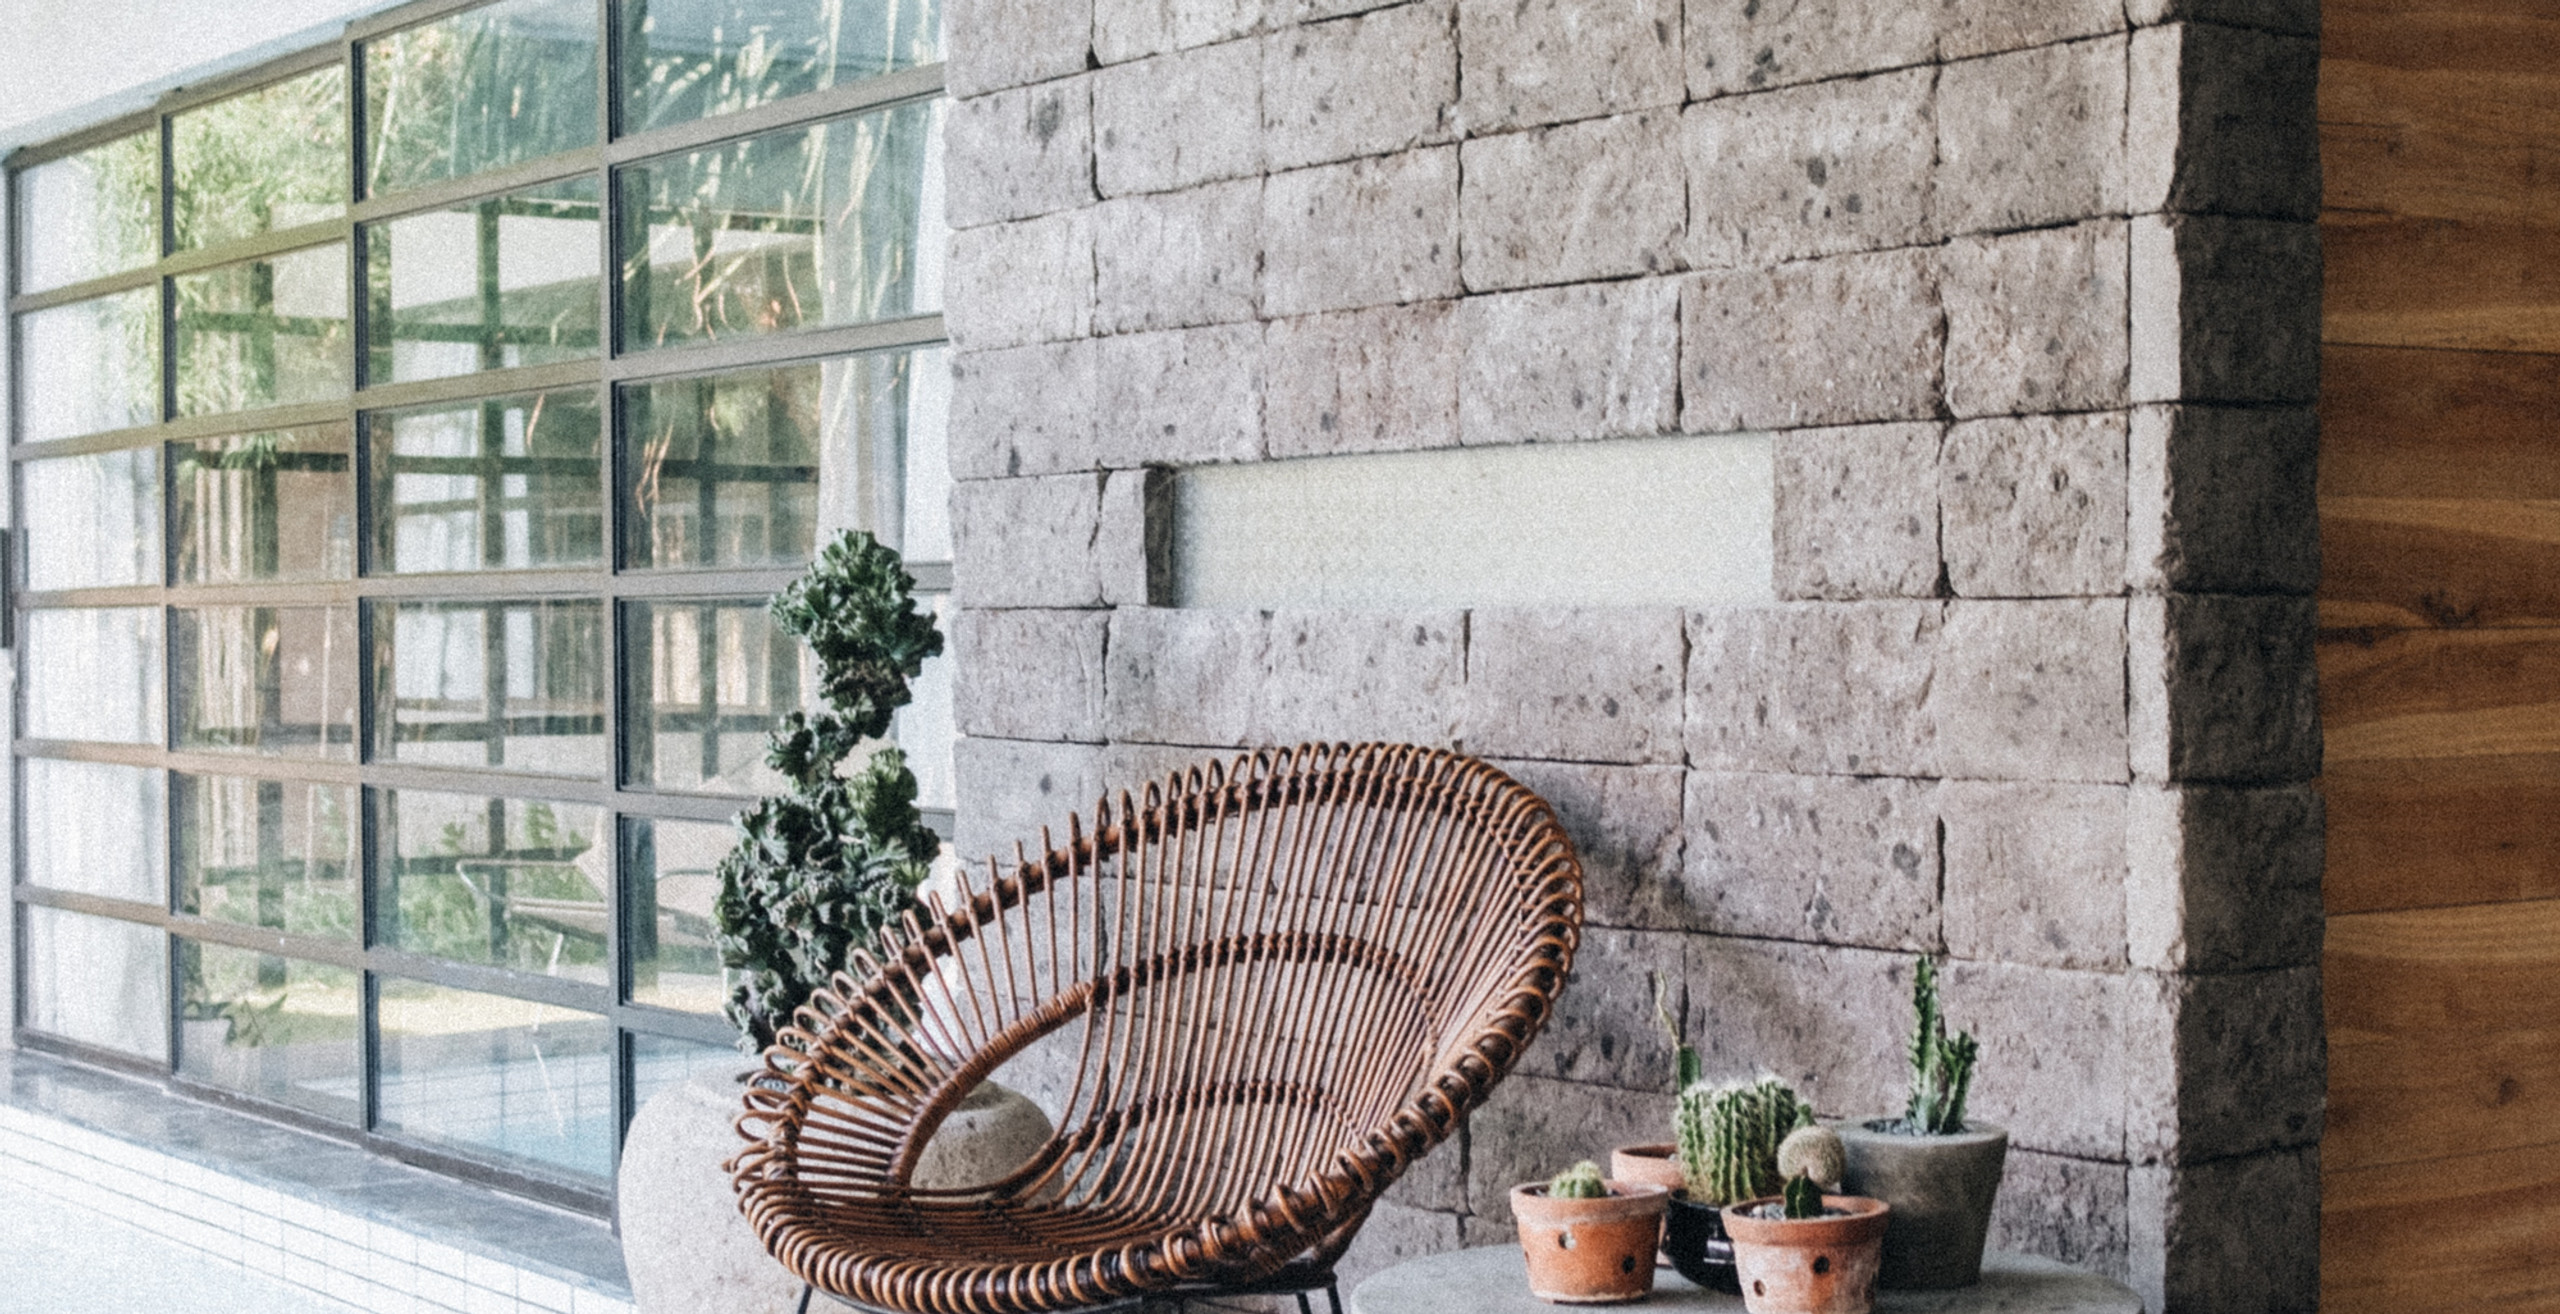 Wicker Rattan Chair in Front of Brick Wall and Concrete Table with Catus